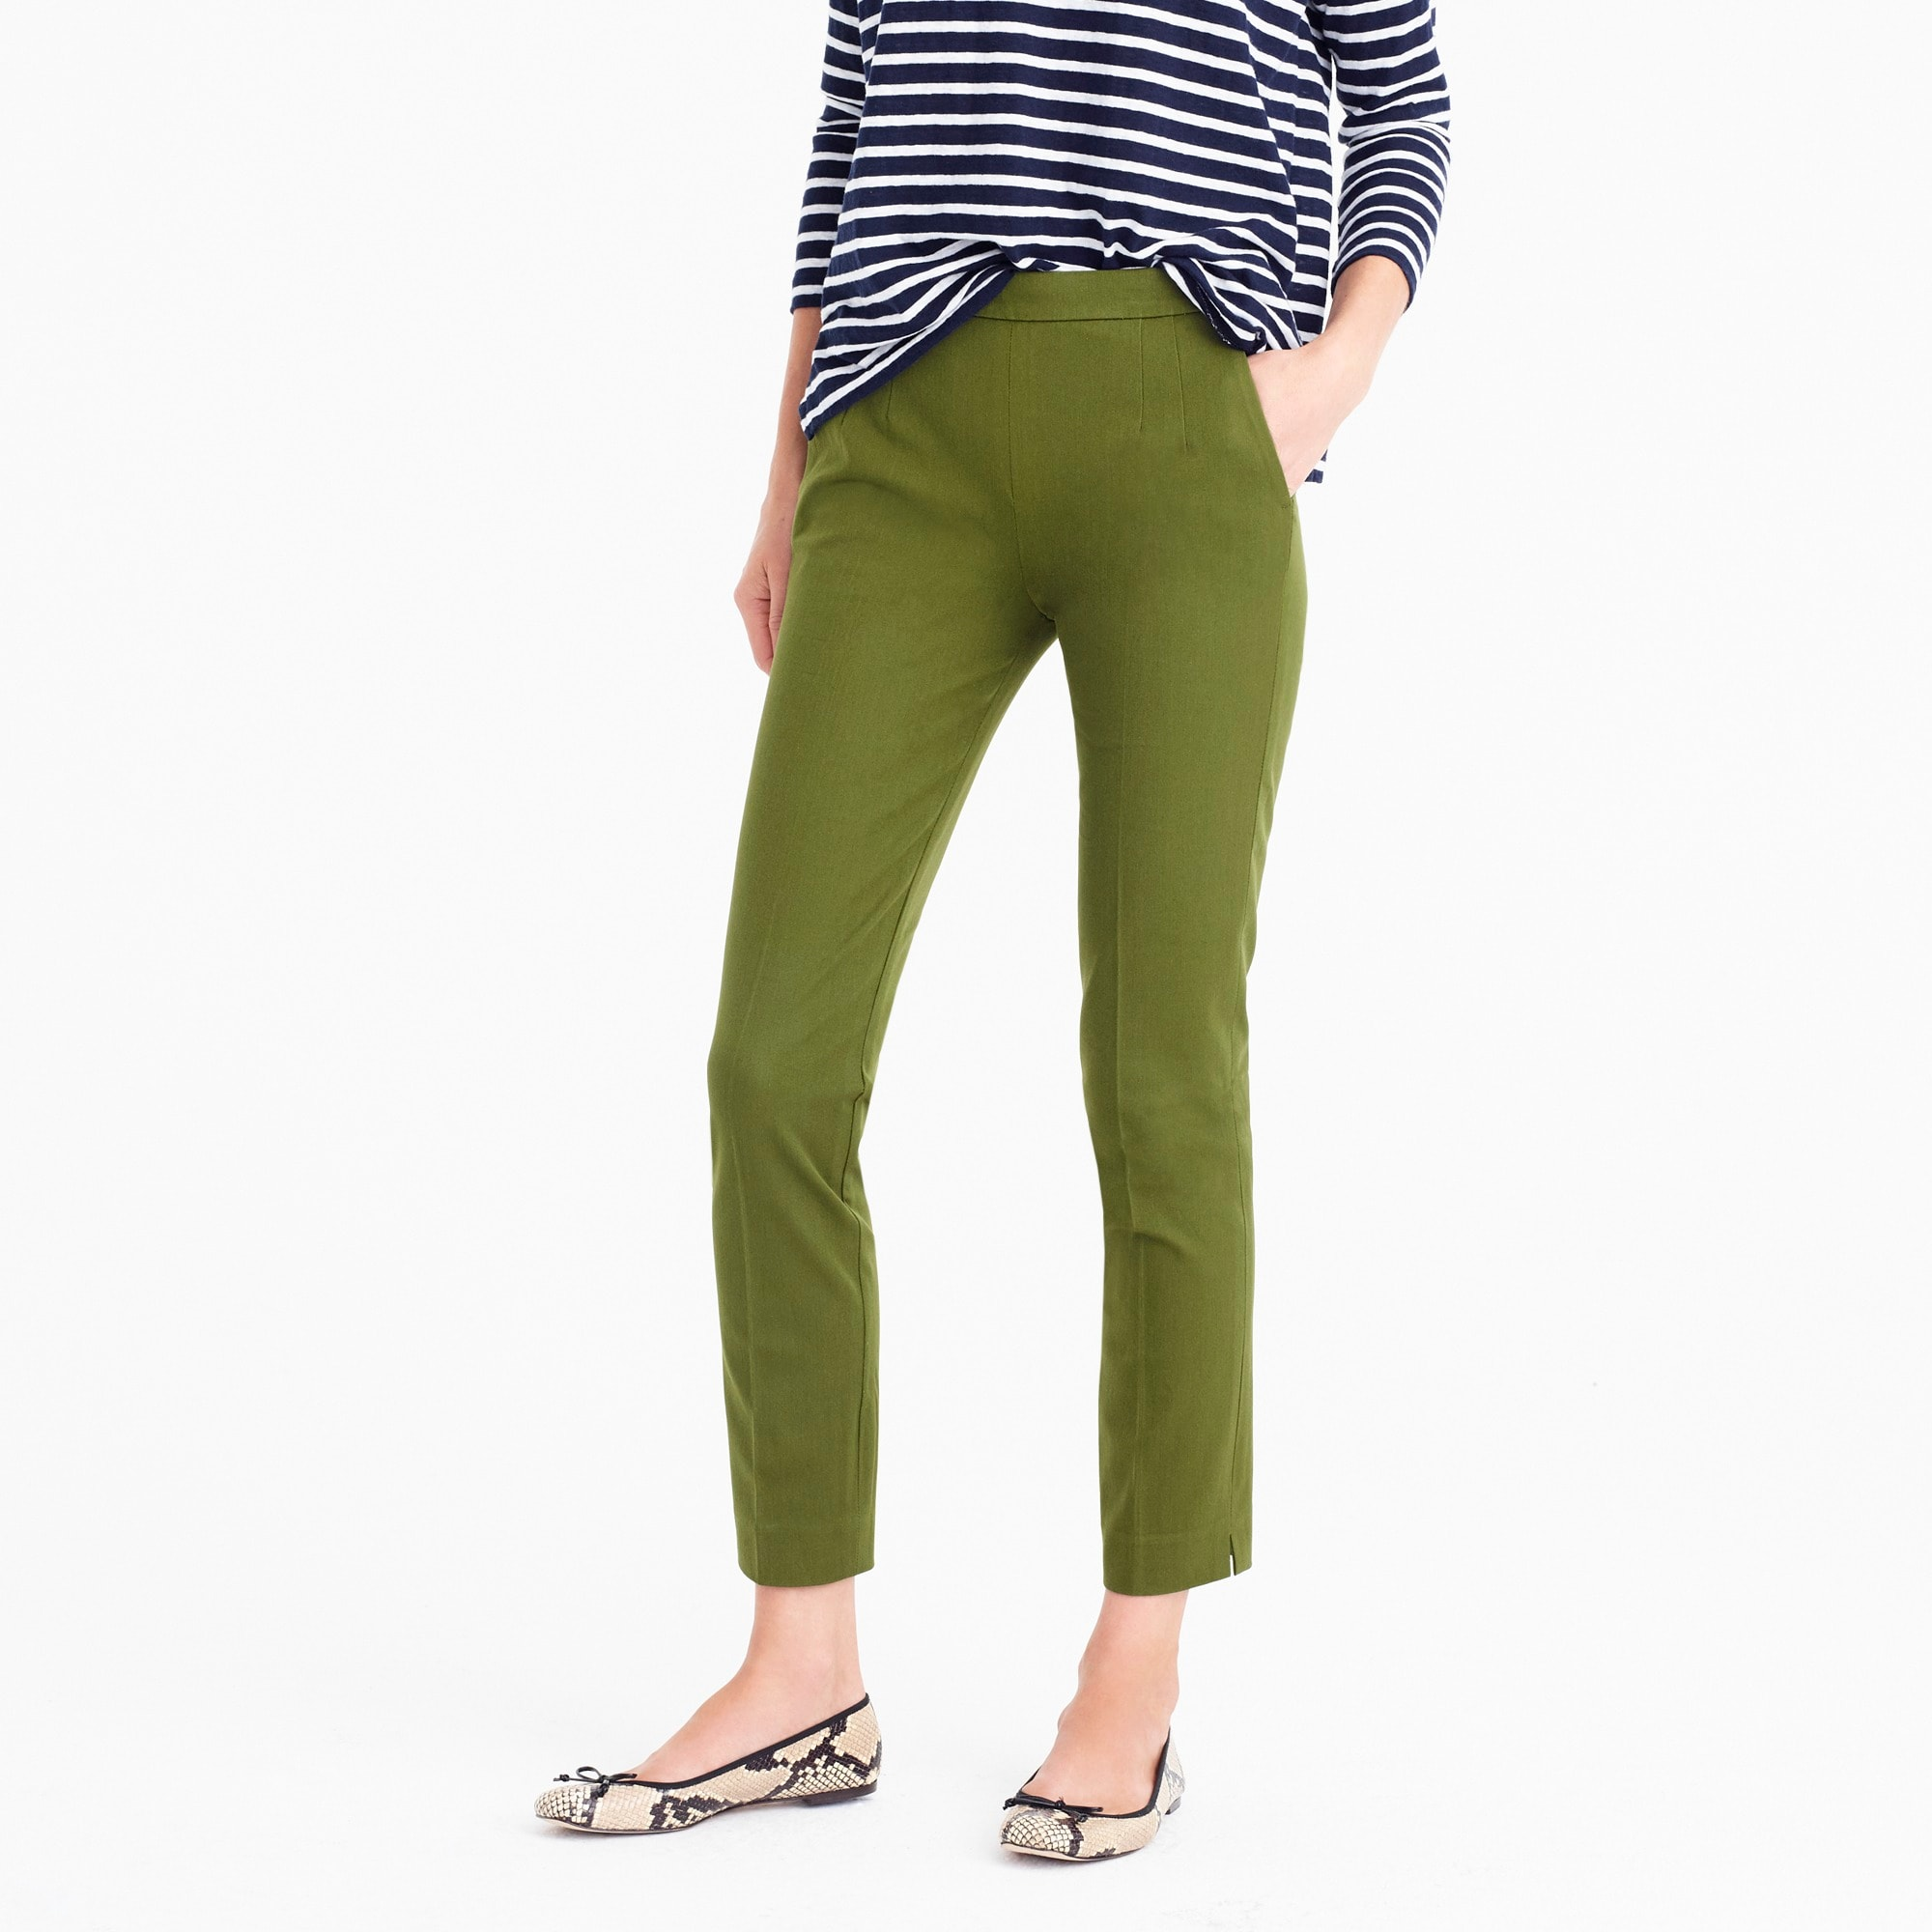 Petite Martie slim crop pant two-way stretch cotton